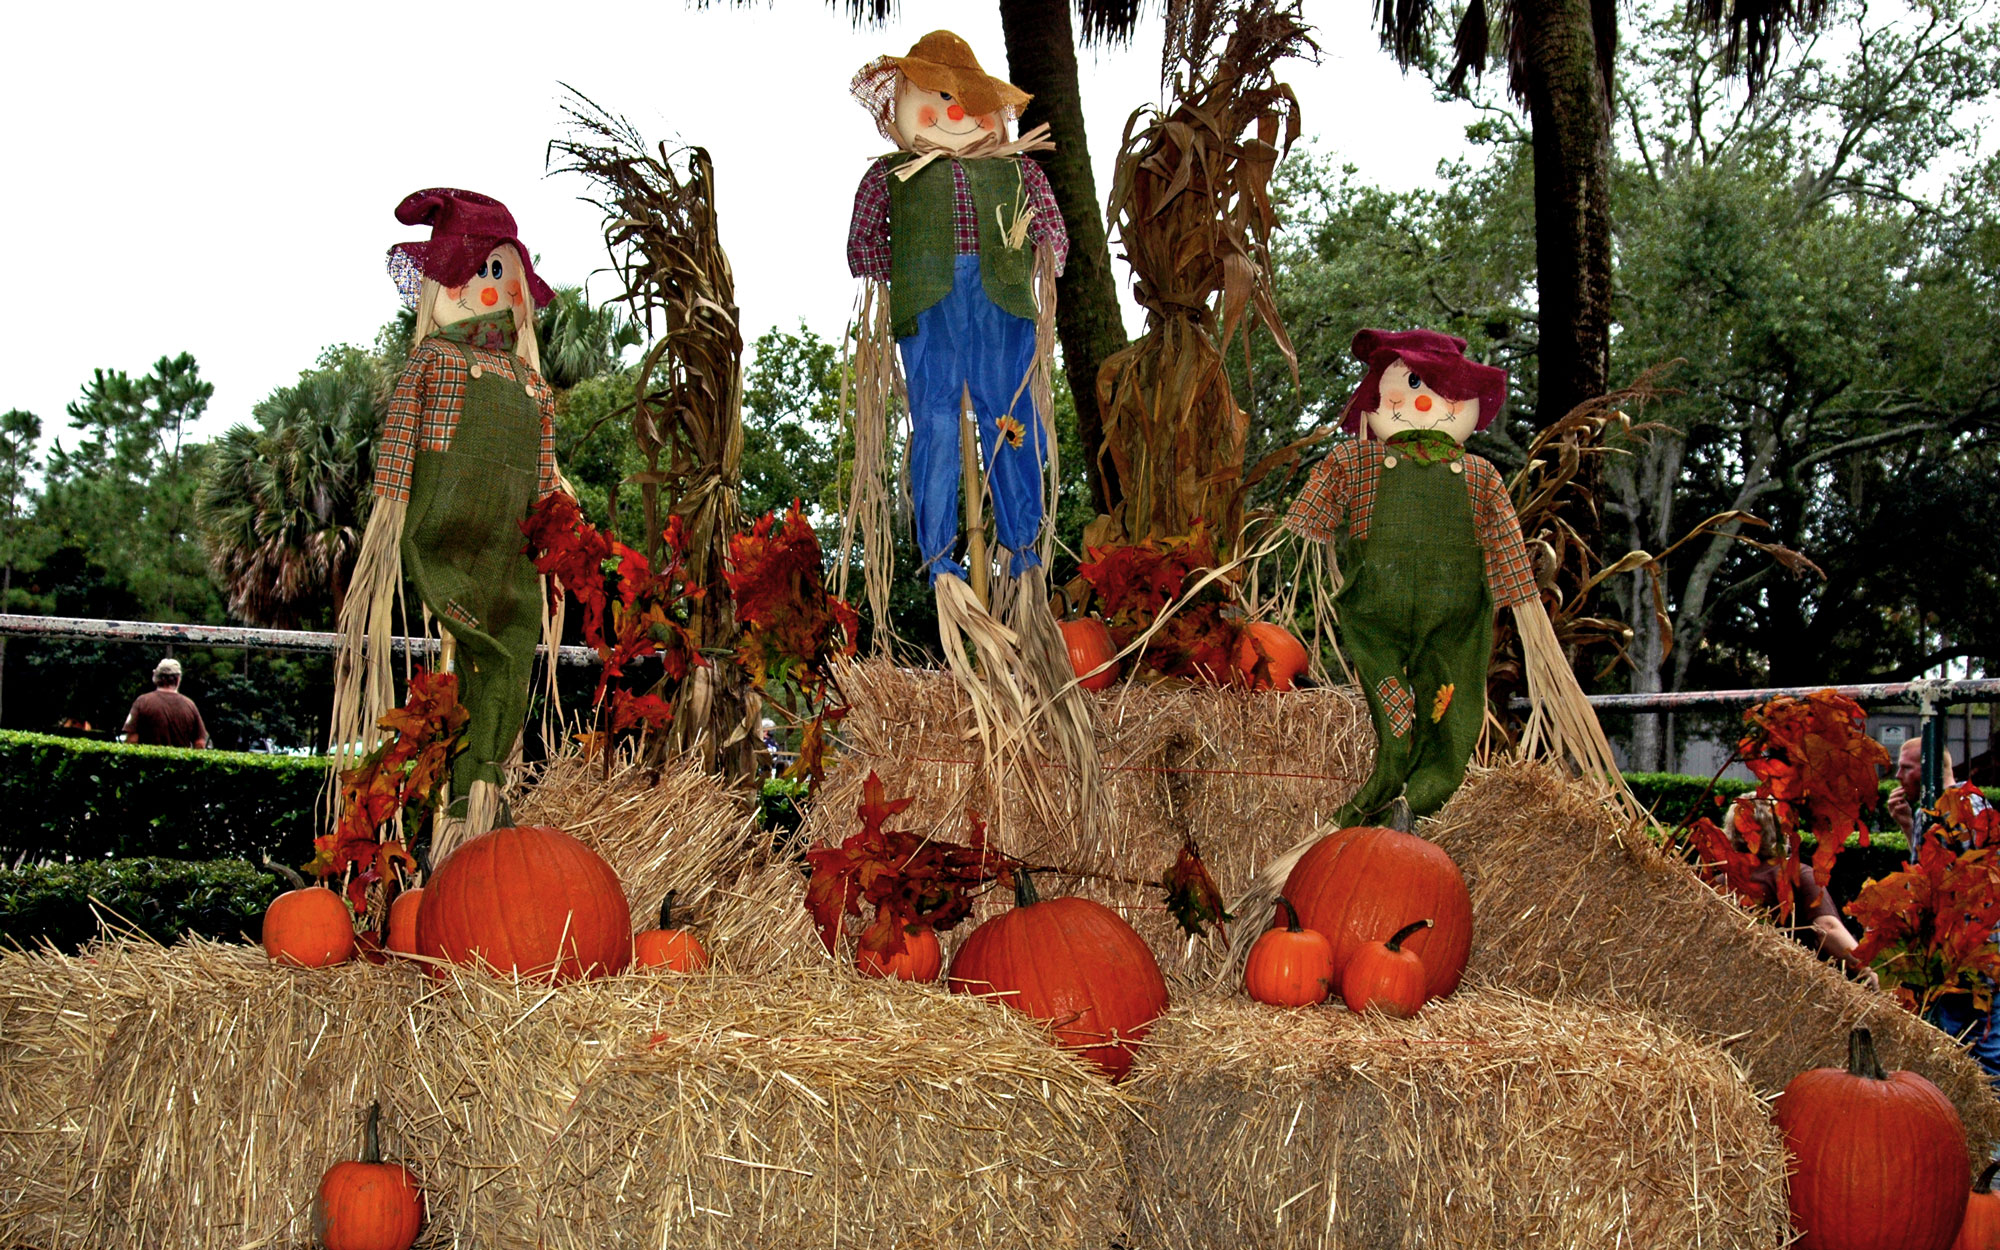 America's Best Towns for Halloween: Winter Park